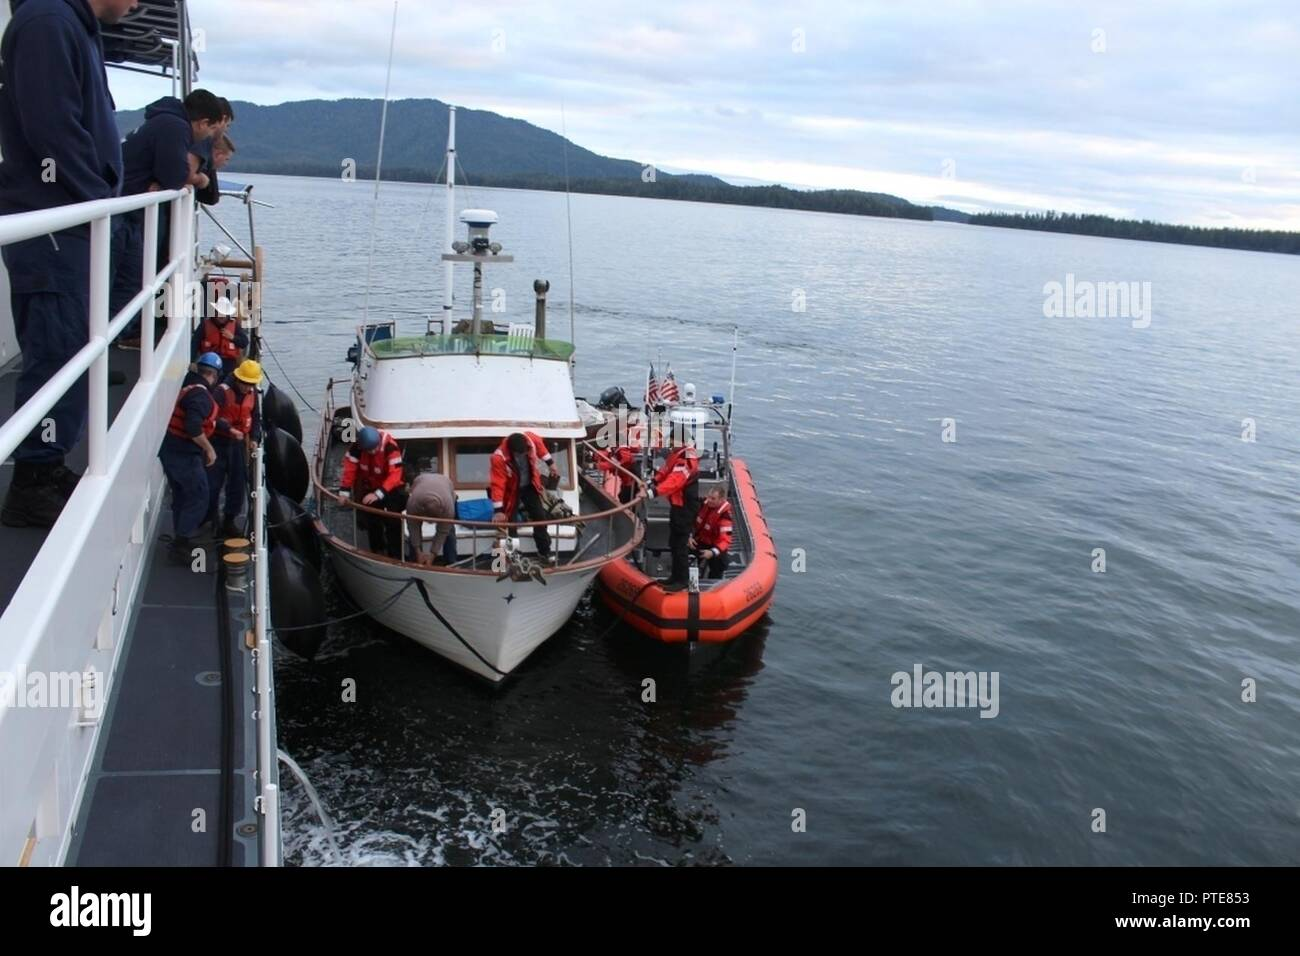 A Coast Guard small-boat crew transfers tow of the 36-foot vessel Viking Queen to the Cutter John McCormick in Elena Bay, 50 miles southwest of Kake, Alaska, July 16, 2017. The crew of the John McCormick and a Kake Search and Rescue crew responded to the vessel after it became disabled and stranded. - Stock Image